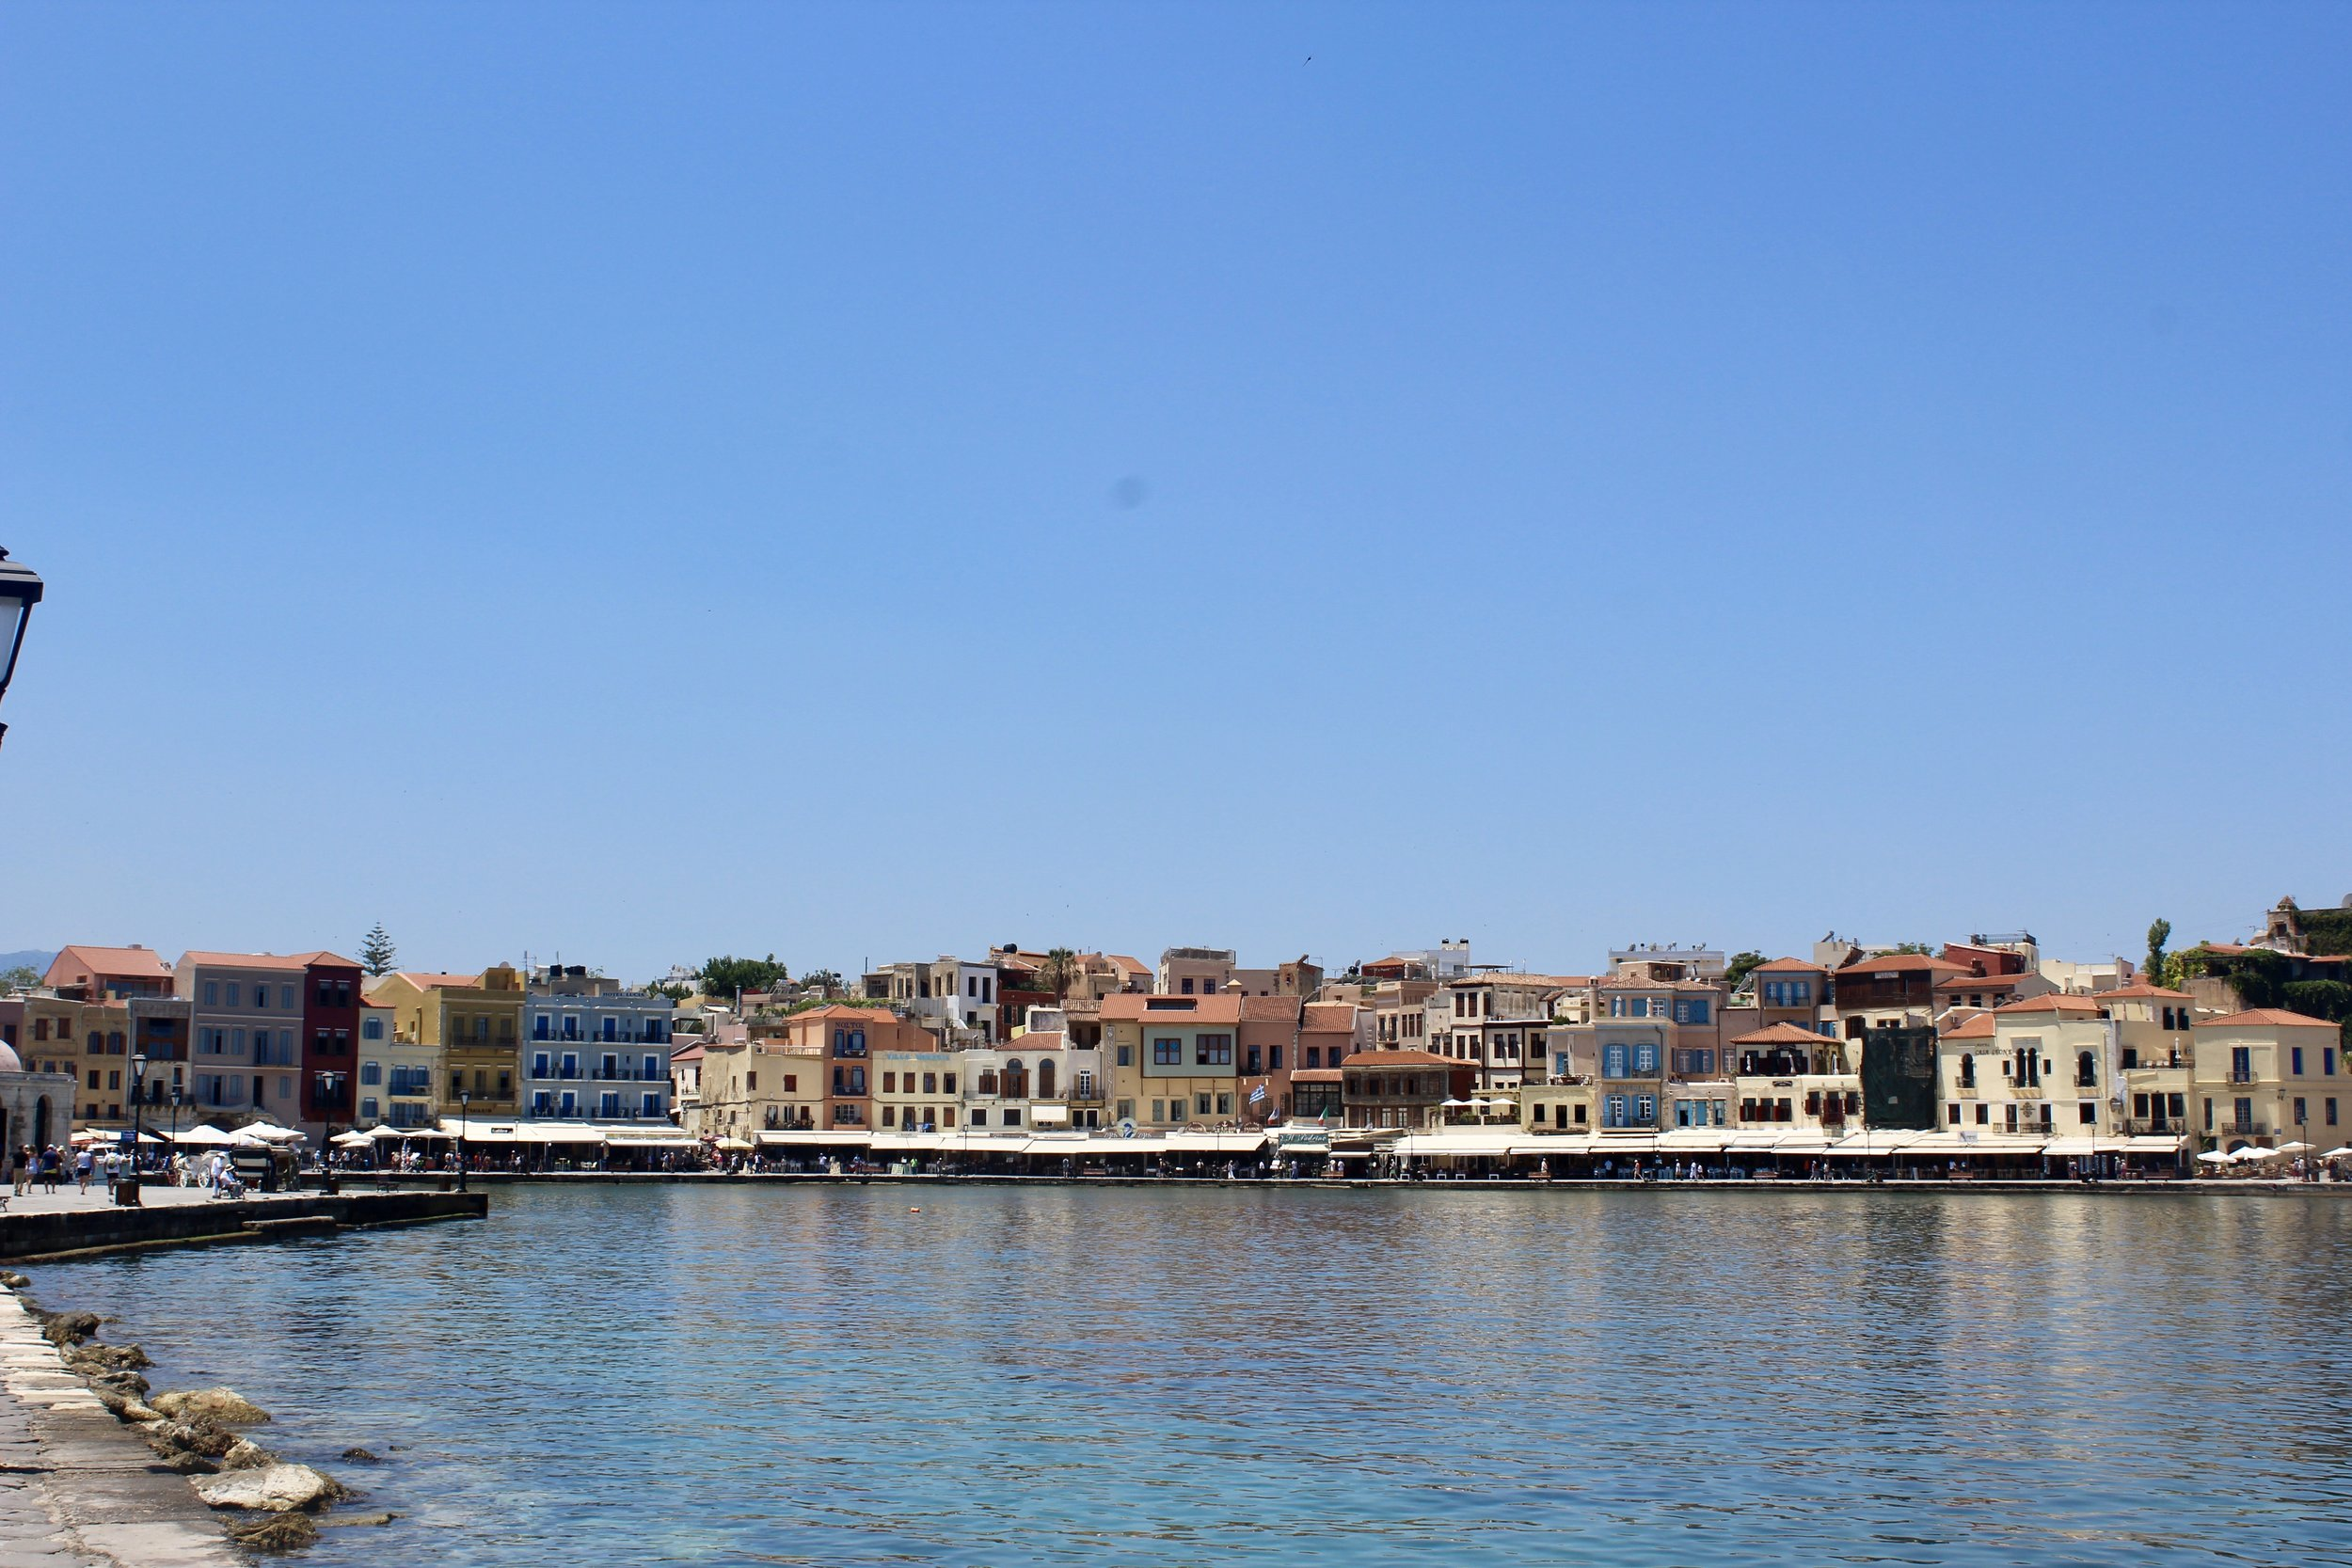 The Venetian Harbor in Chania is one of the most photographed areas of Greece!